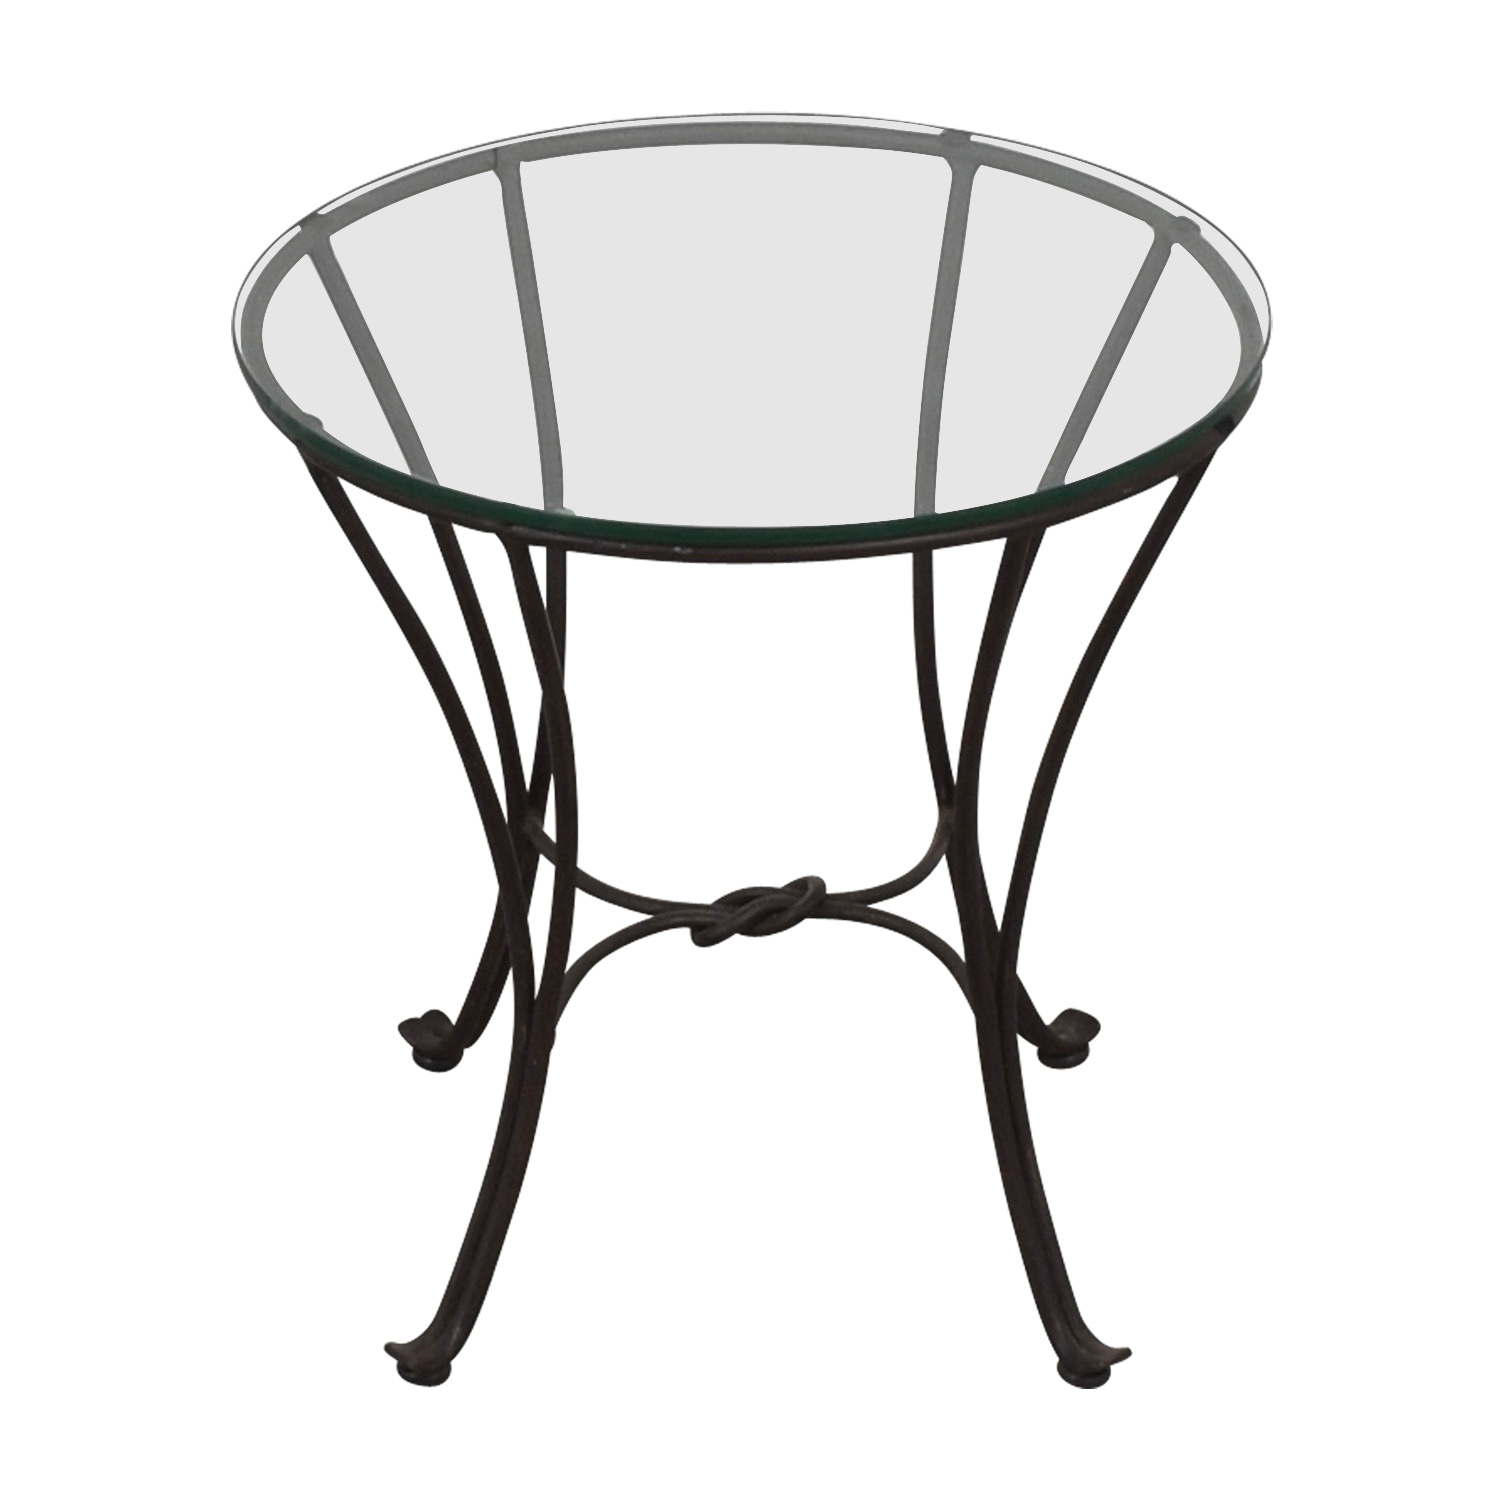 Round Glass Side Table dimensions